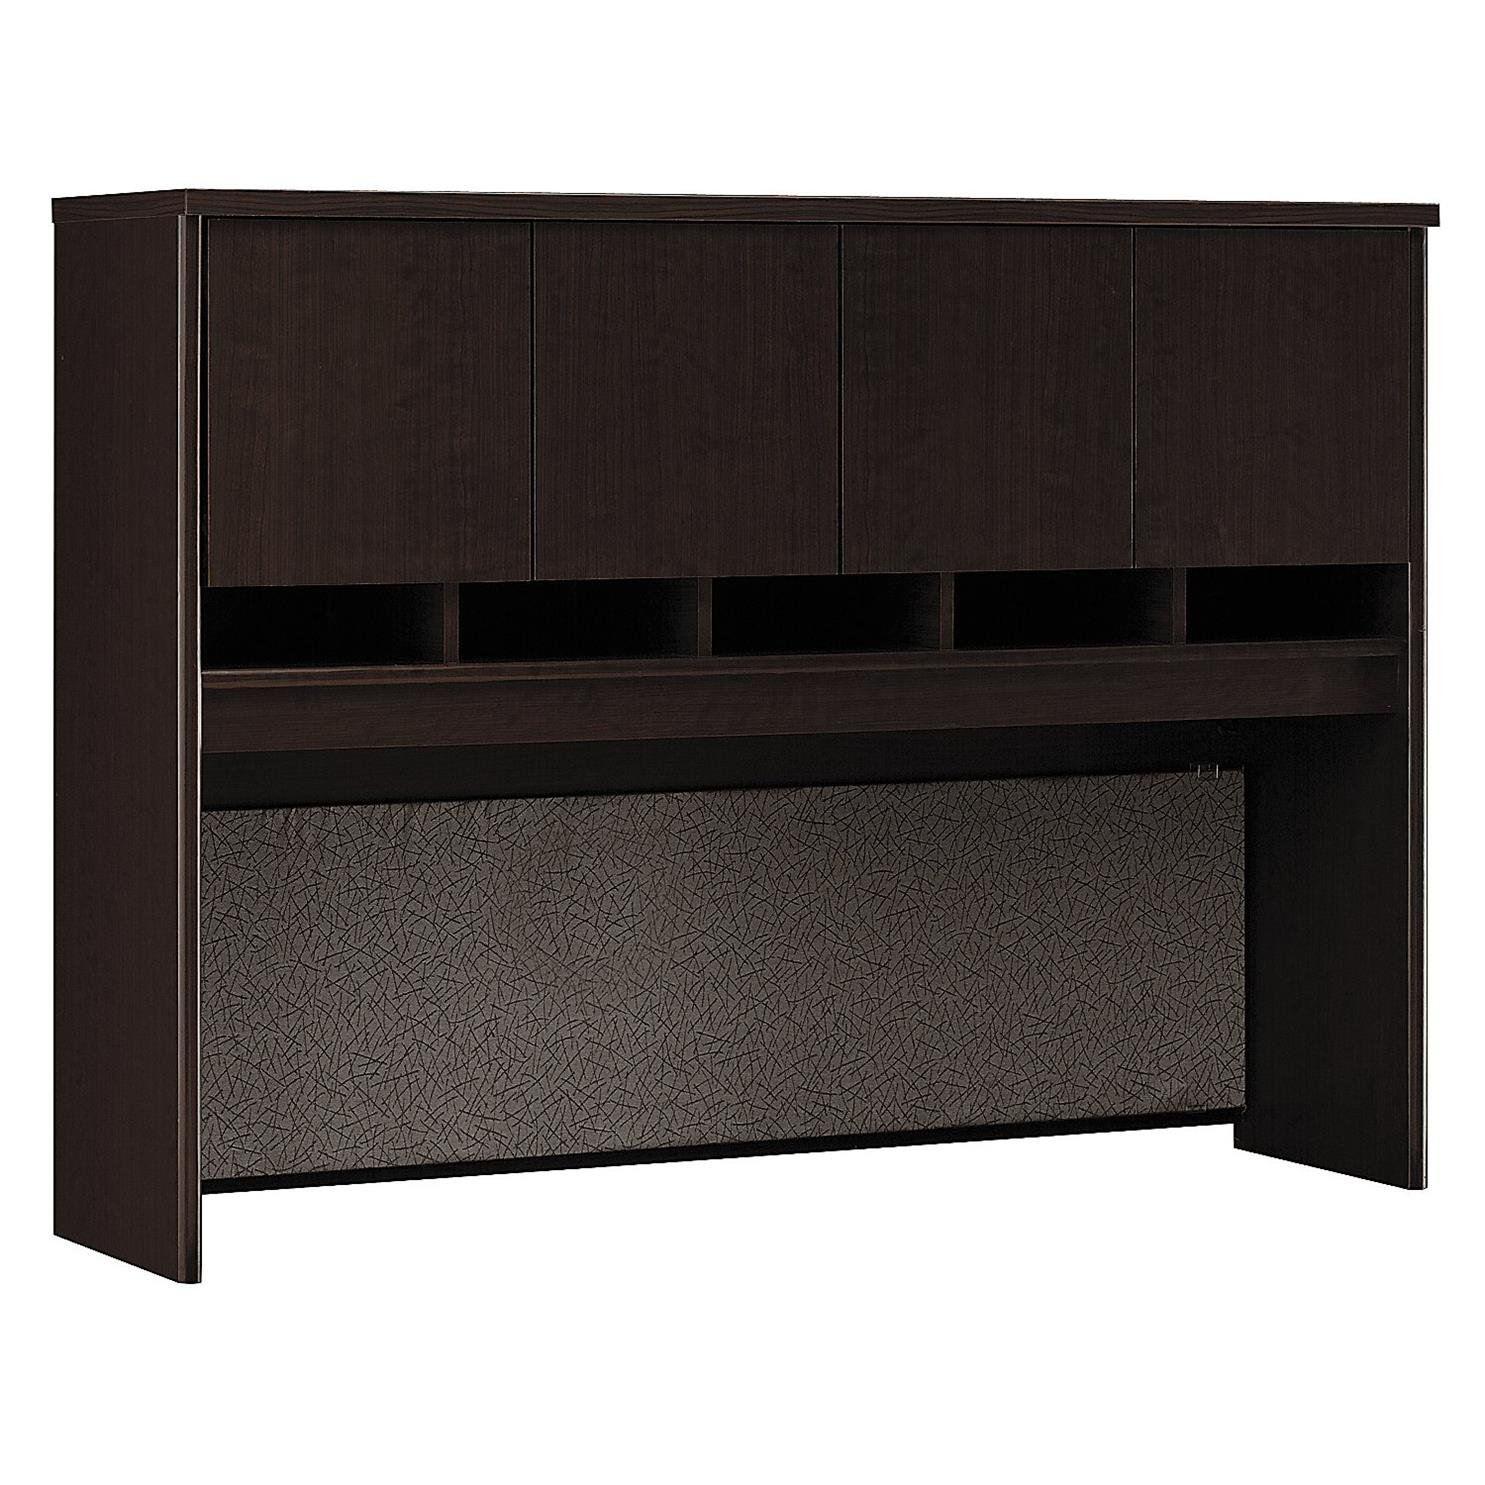 BUSH BUSINESS FURNITURE SERIES C:60-inch HUTCH